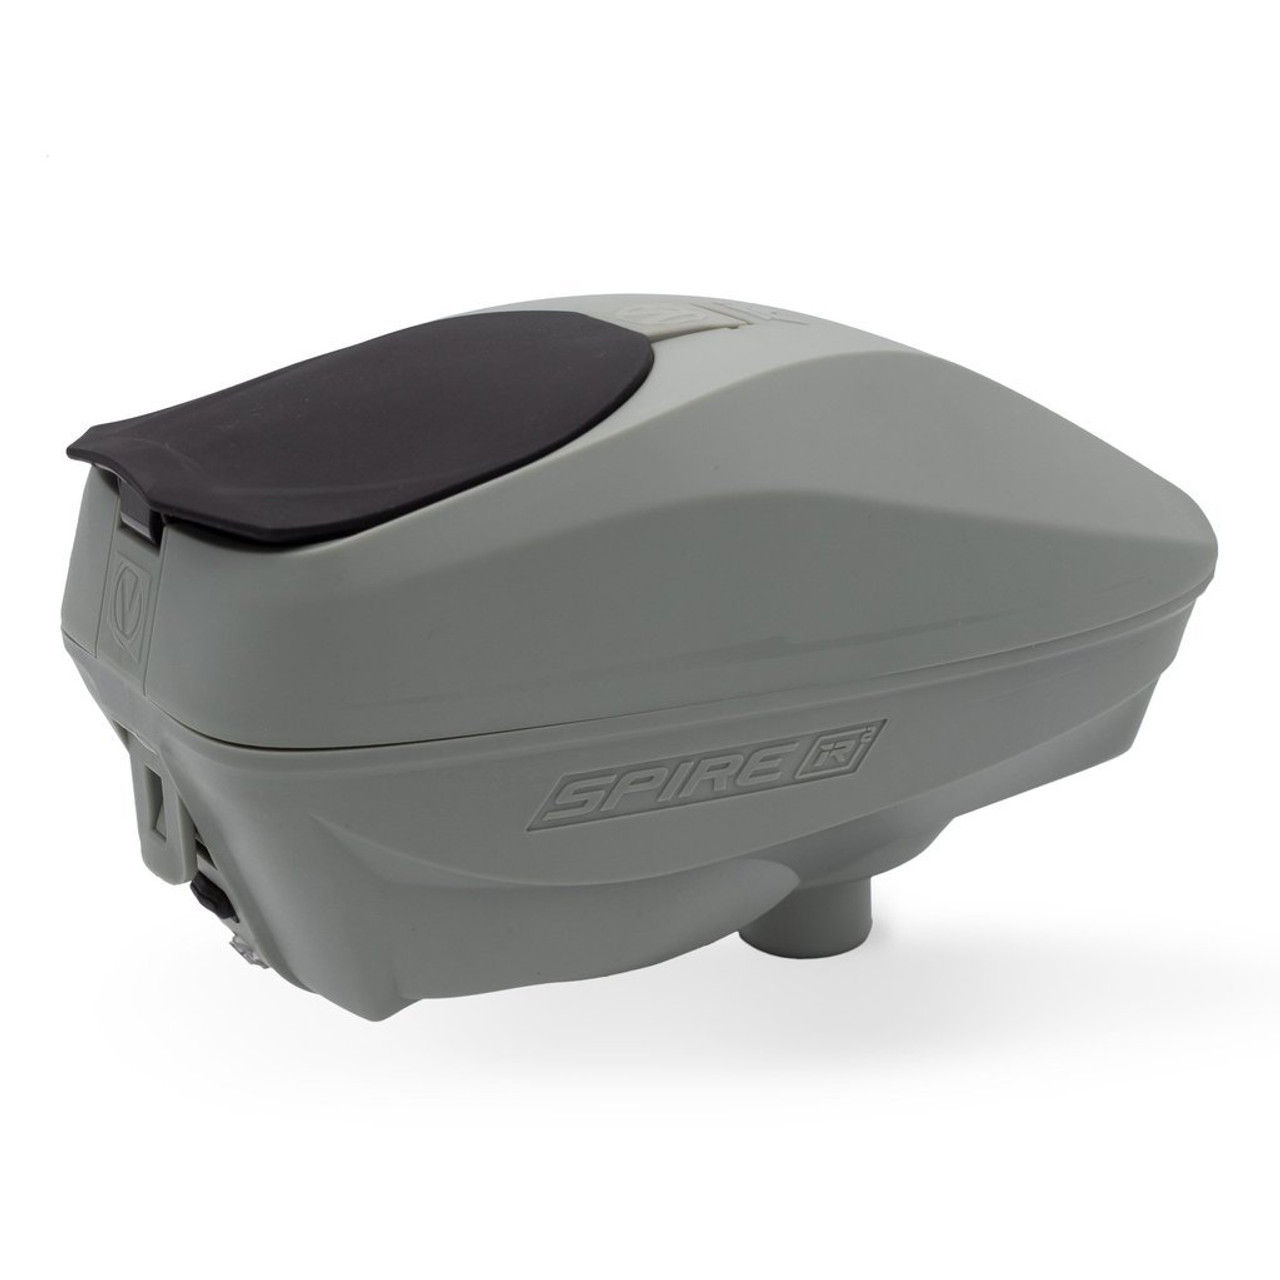 Virtue Spire Electronic Paintball Loaders//Hoppers